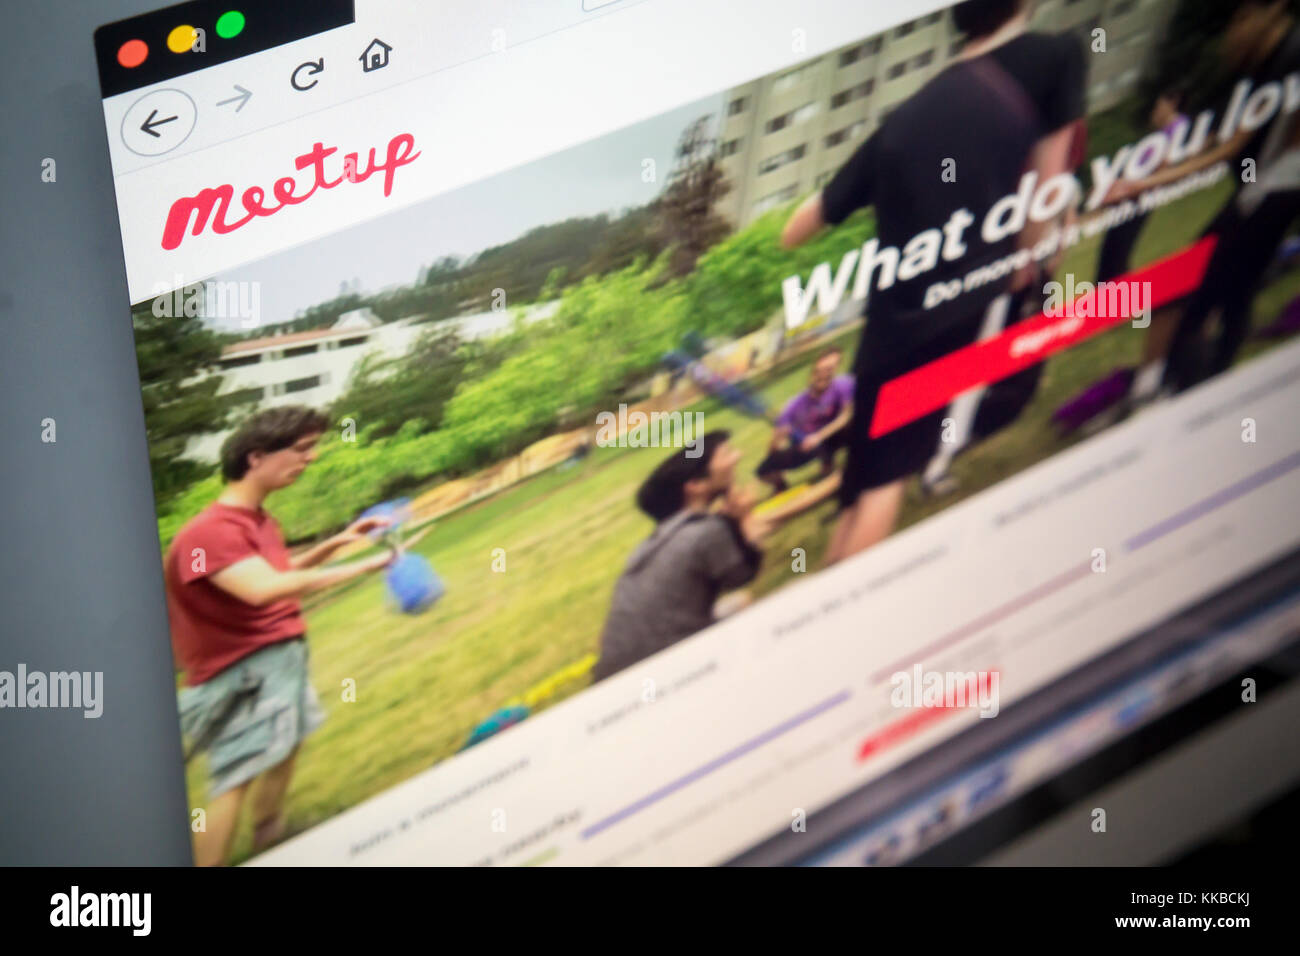 The Meetup social network website is seen on Tuesday, November 28, 2017. WeWork announced that it is buying Meetup - Stock Image